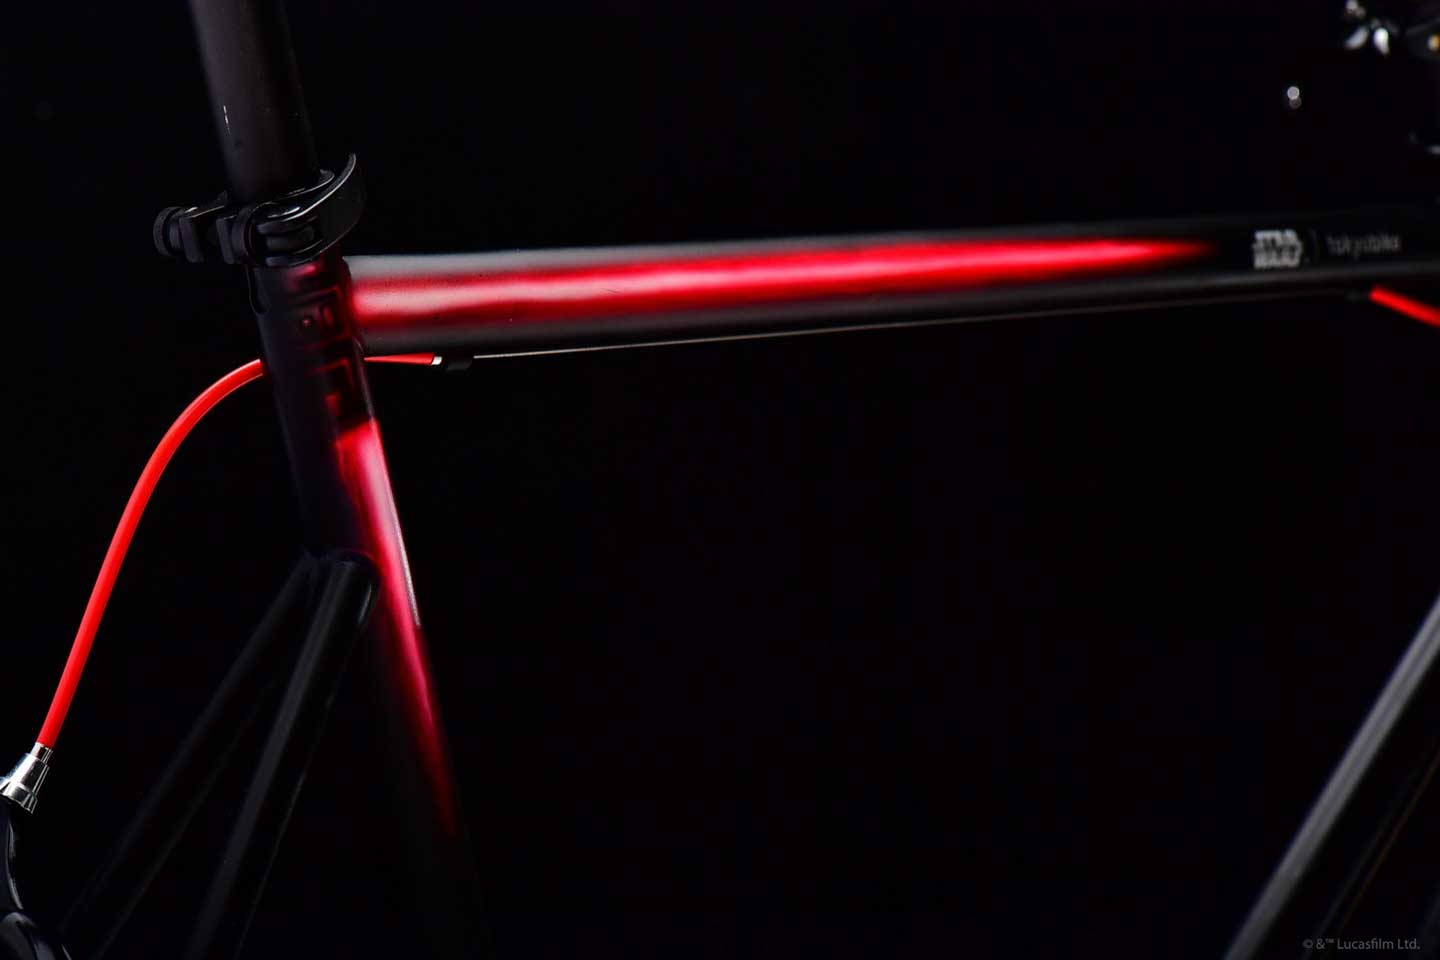 STAR WARS x tokyobike Kylo Ren - Hand painted lightsaber on frame